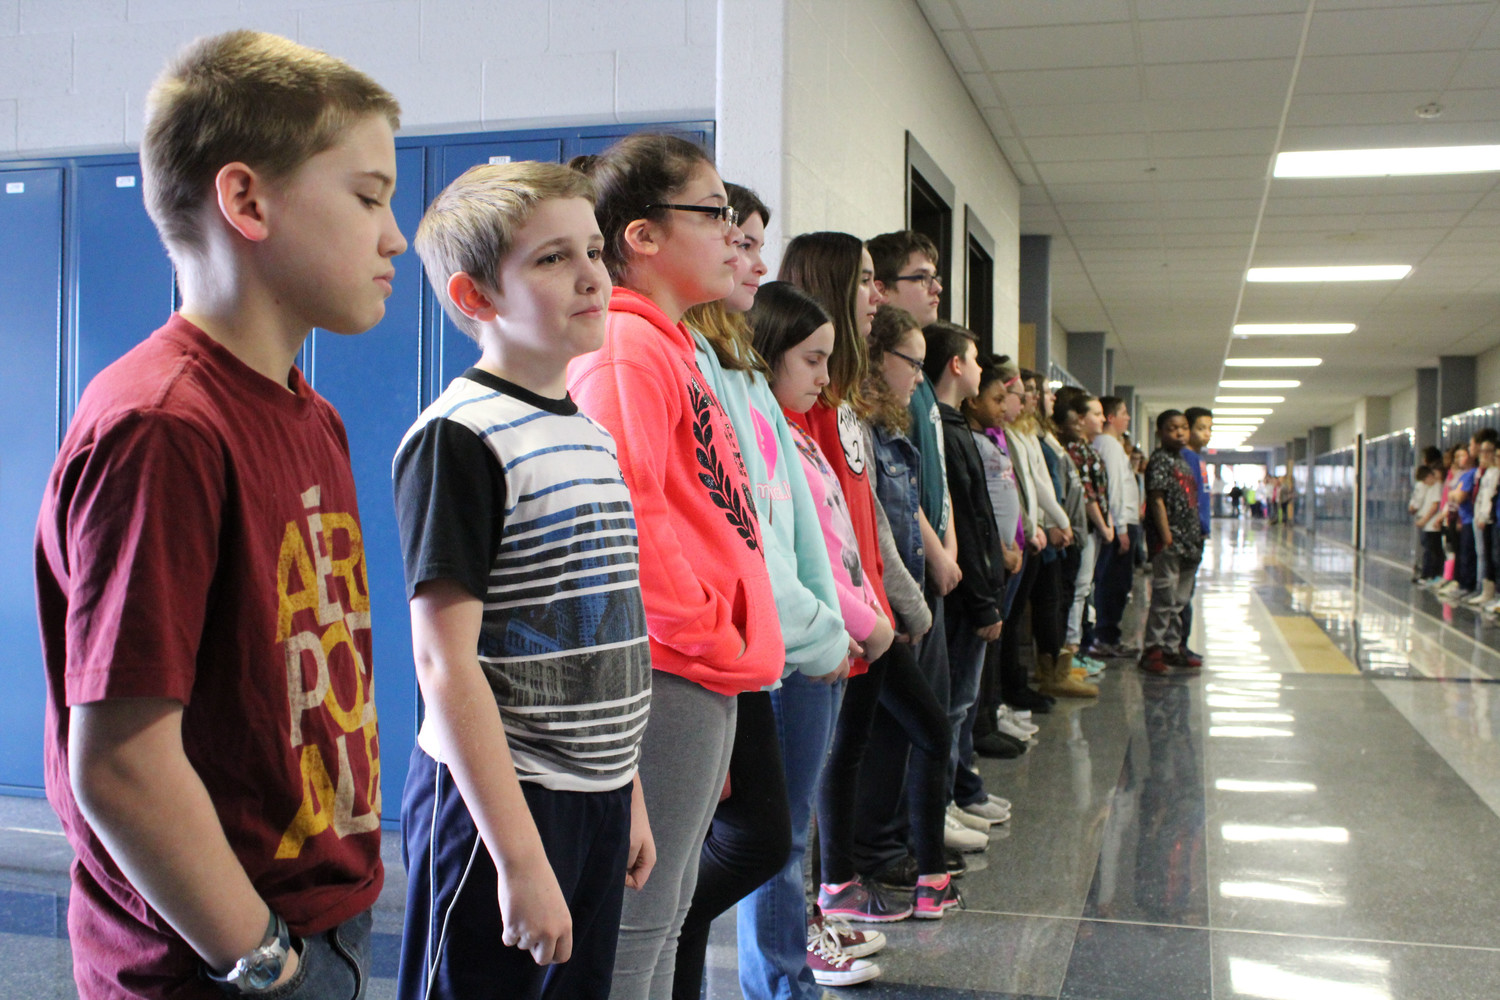 Sixth-grader Kaden Gardner was one of the students who participated in the moment of silence.